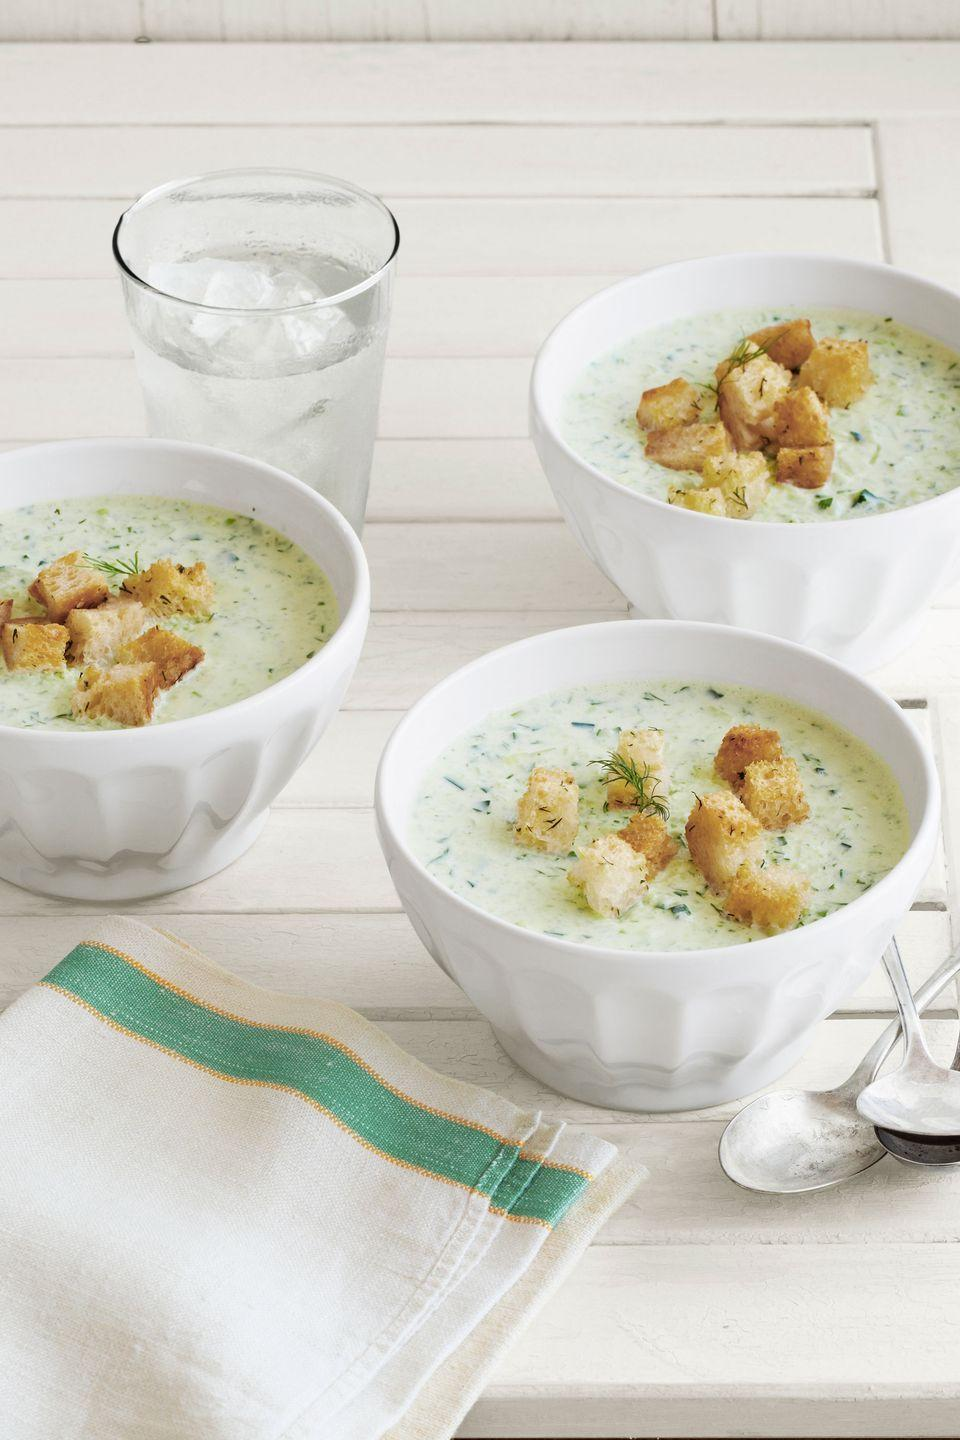 "Cool and refreshing, this soup gets its creaminess from healthy Greek yogurt. <a href=""https://www.countryliving.com/food-drinks/recipes/a5448/chilled-cucumber-soup-recipe-clv0813/"" rel=""nofollow noopener"" target=""_blank"" data-ylk=""slk:Get the recipe"" class=""link rapid-noclick-resp""><strong>Get the recipe</strong></a><strong>.</strong>"